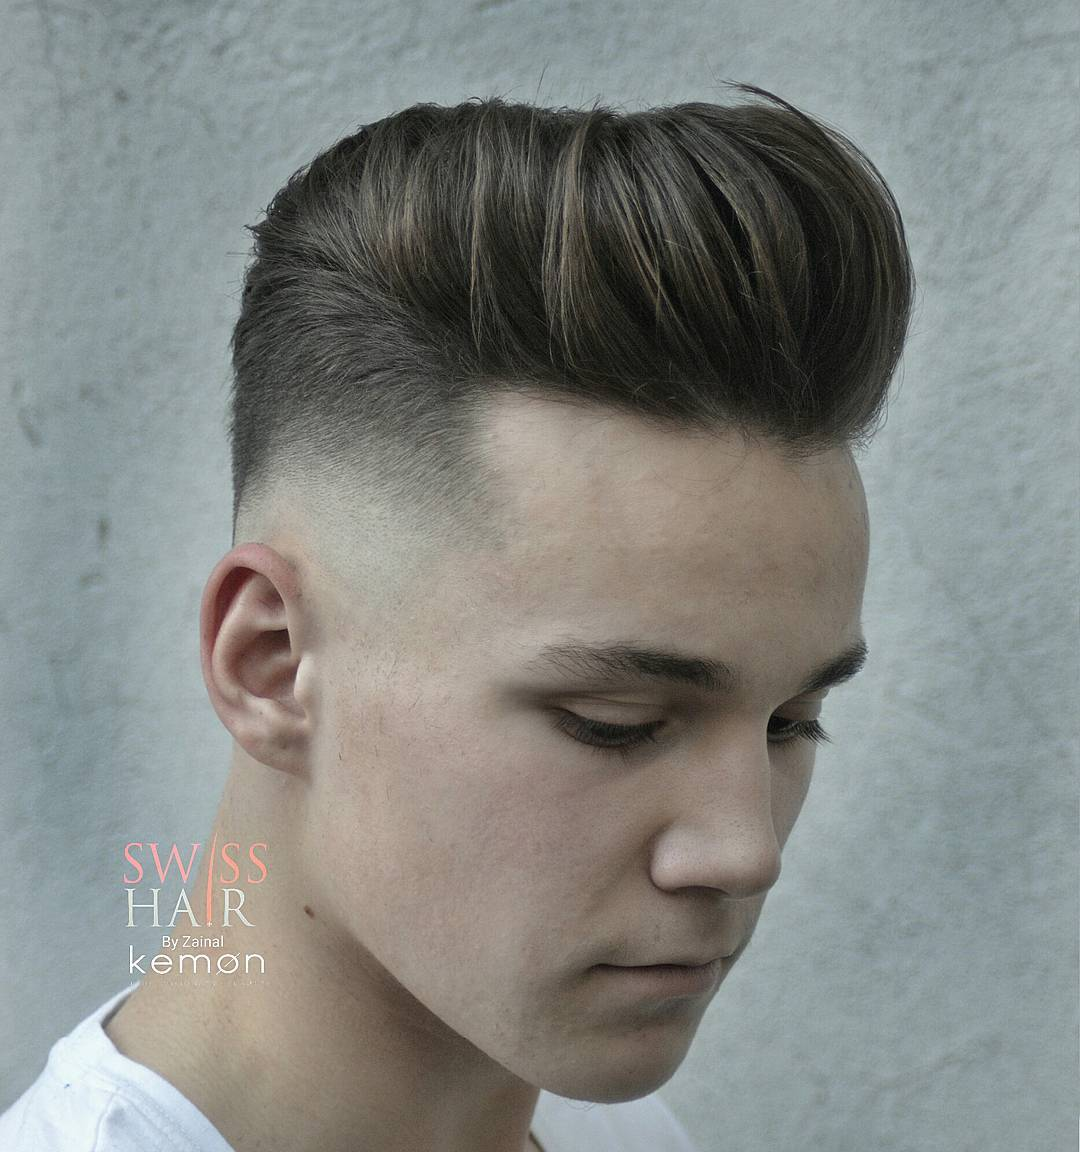 Hairstyles For Men With Thick Hair fashionable medium hairstyles for men with thick hair Thick Hair Pompadour Hairstyle Bald Fade